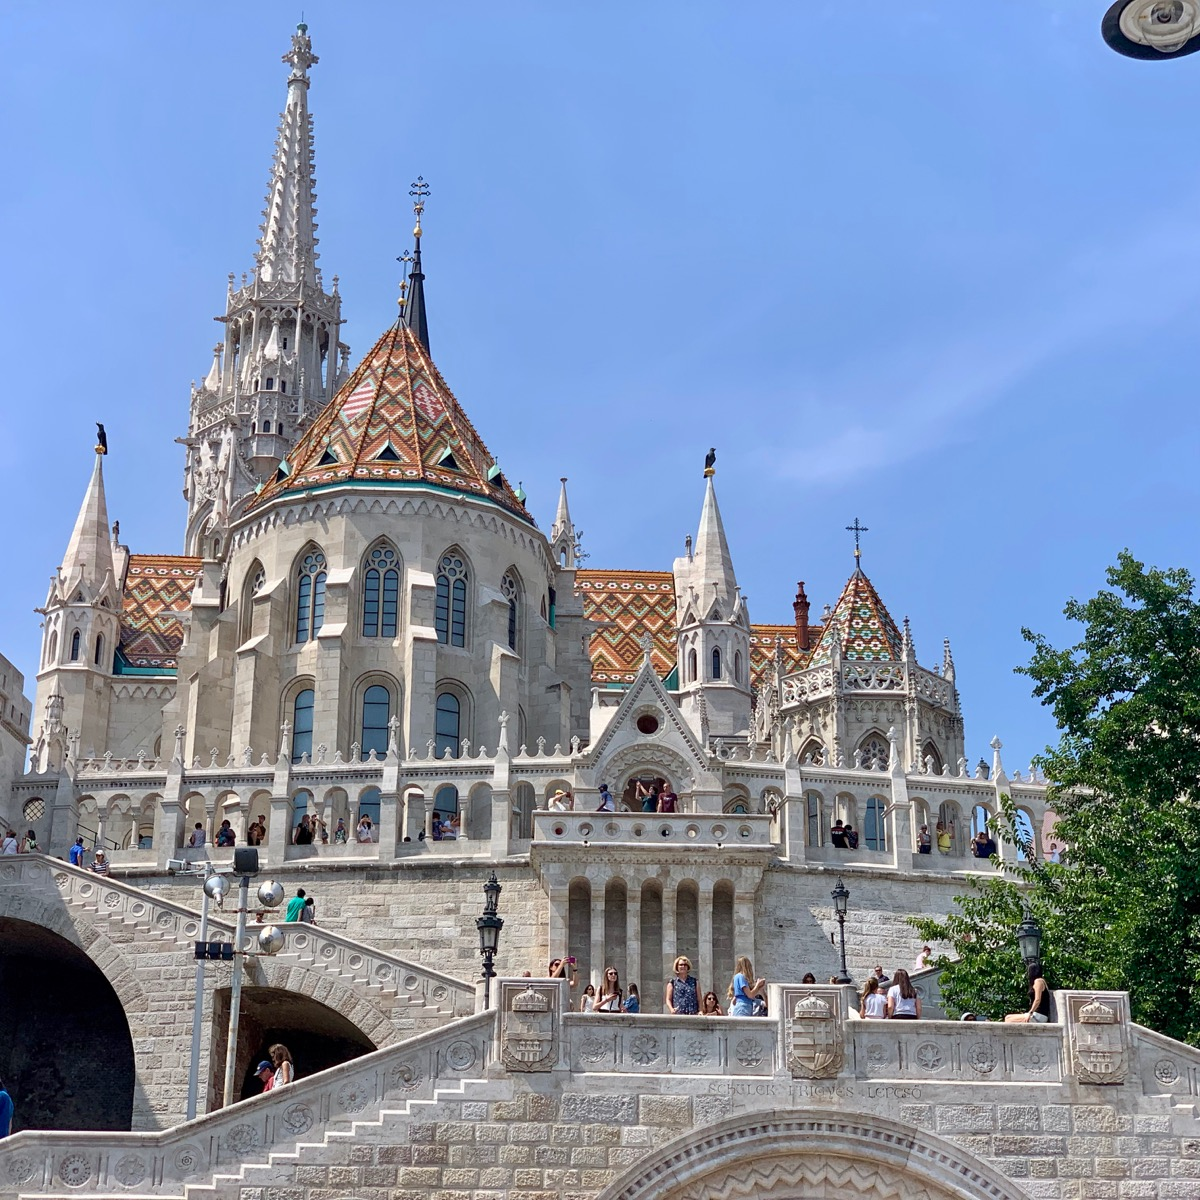 Another view of Matthias Church in Budapest